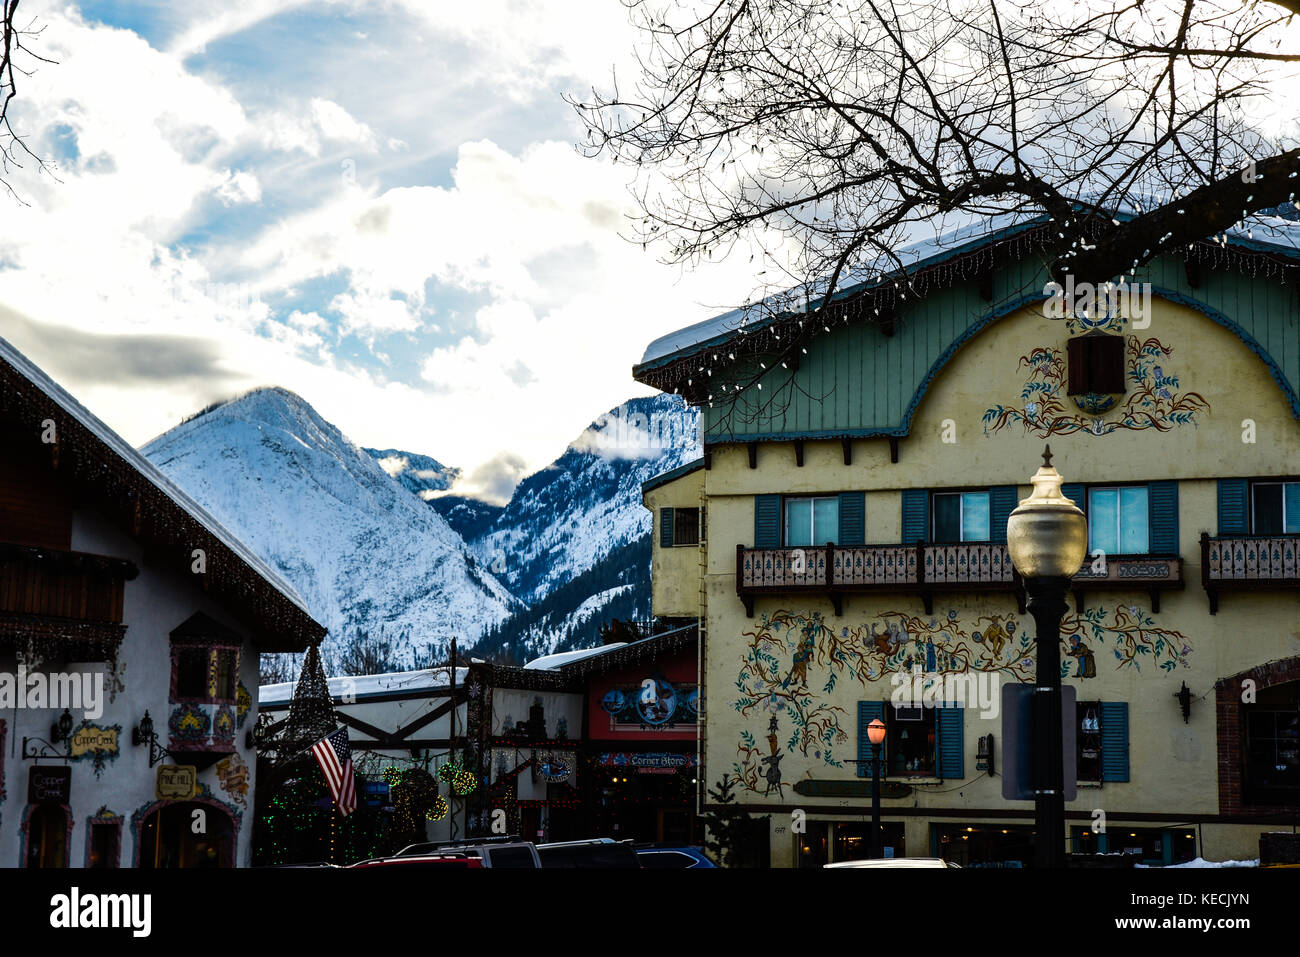 White Clouds and Colorful Walls - January in Leavenworth, Washington, brings snow-clad hills and snow-laden clouds. - Stock Image